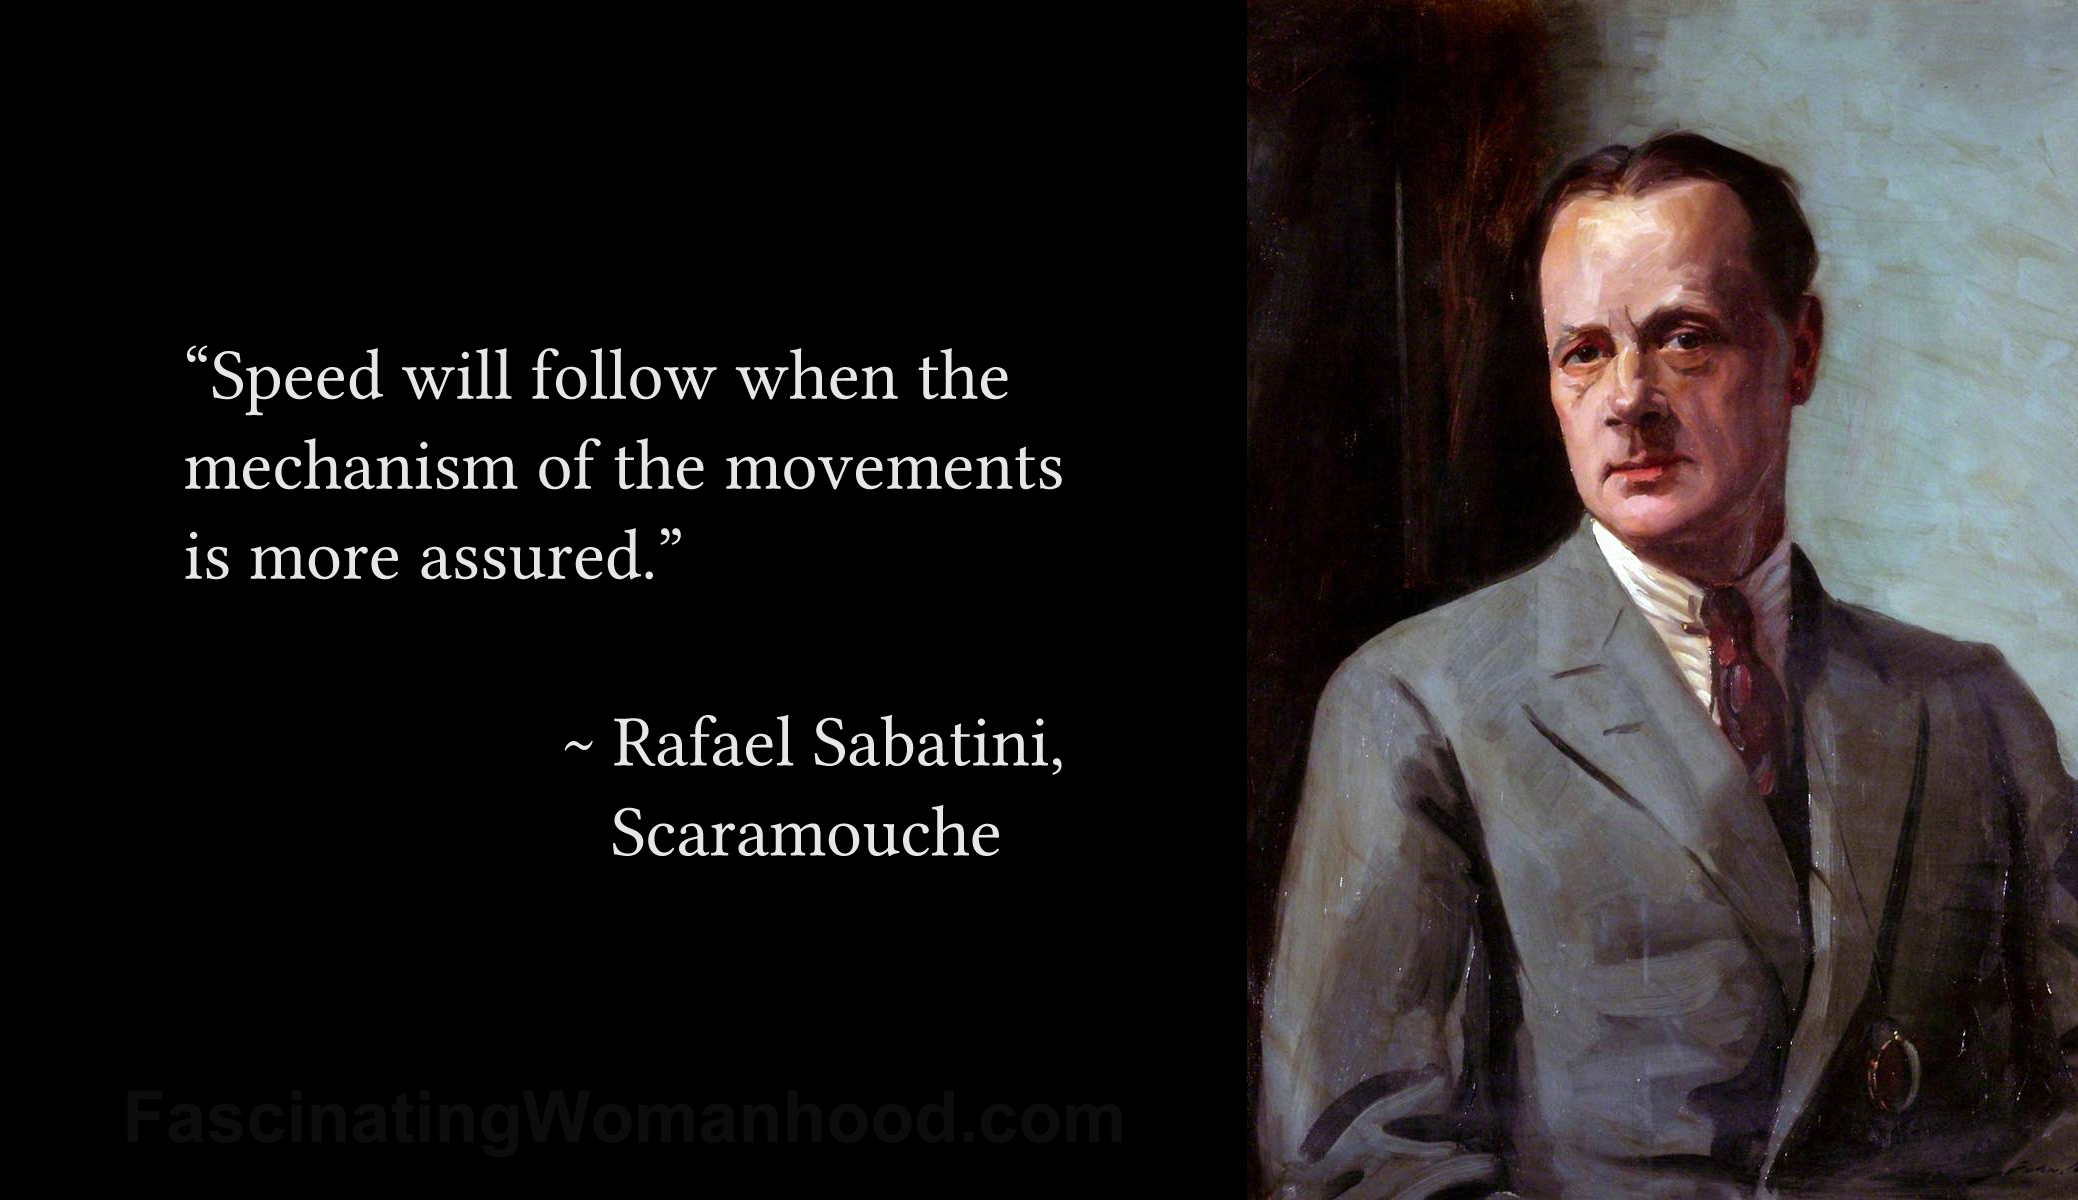 A Quote by Rafael Sabatini.jpg